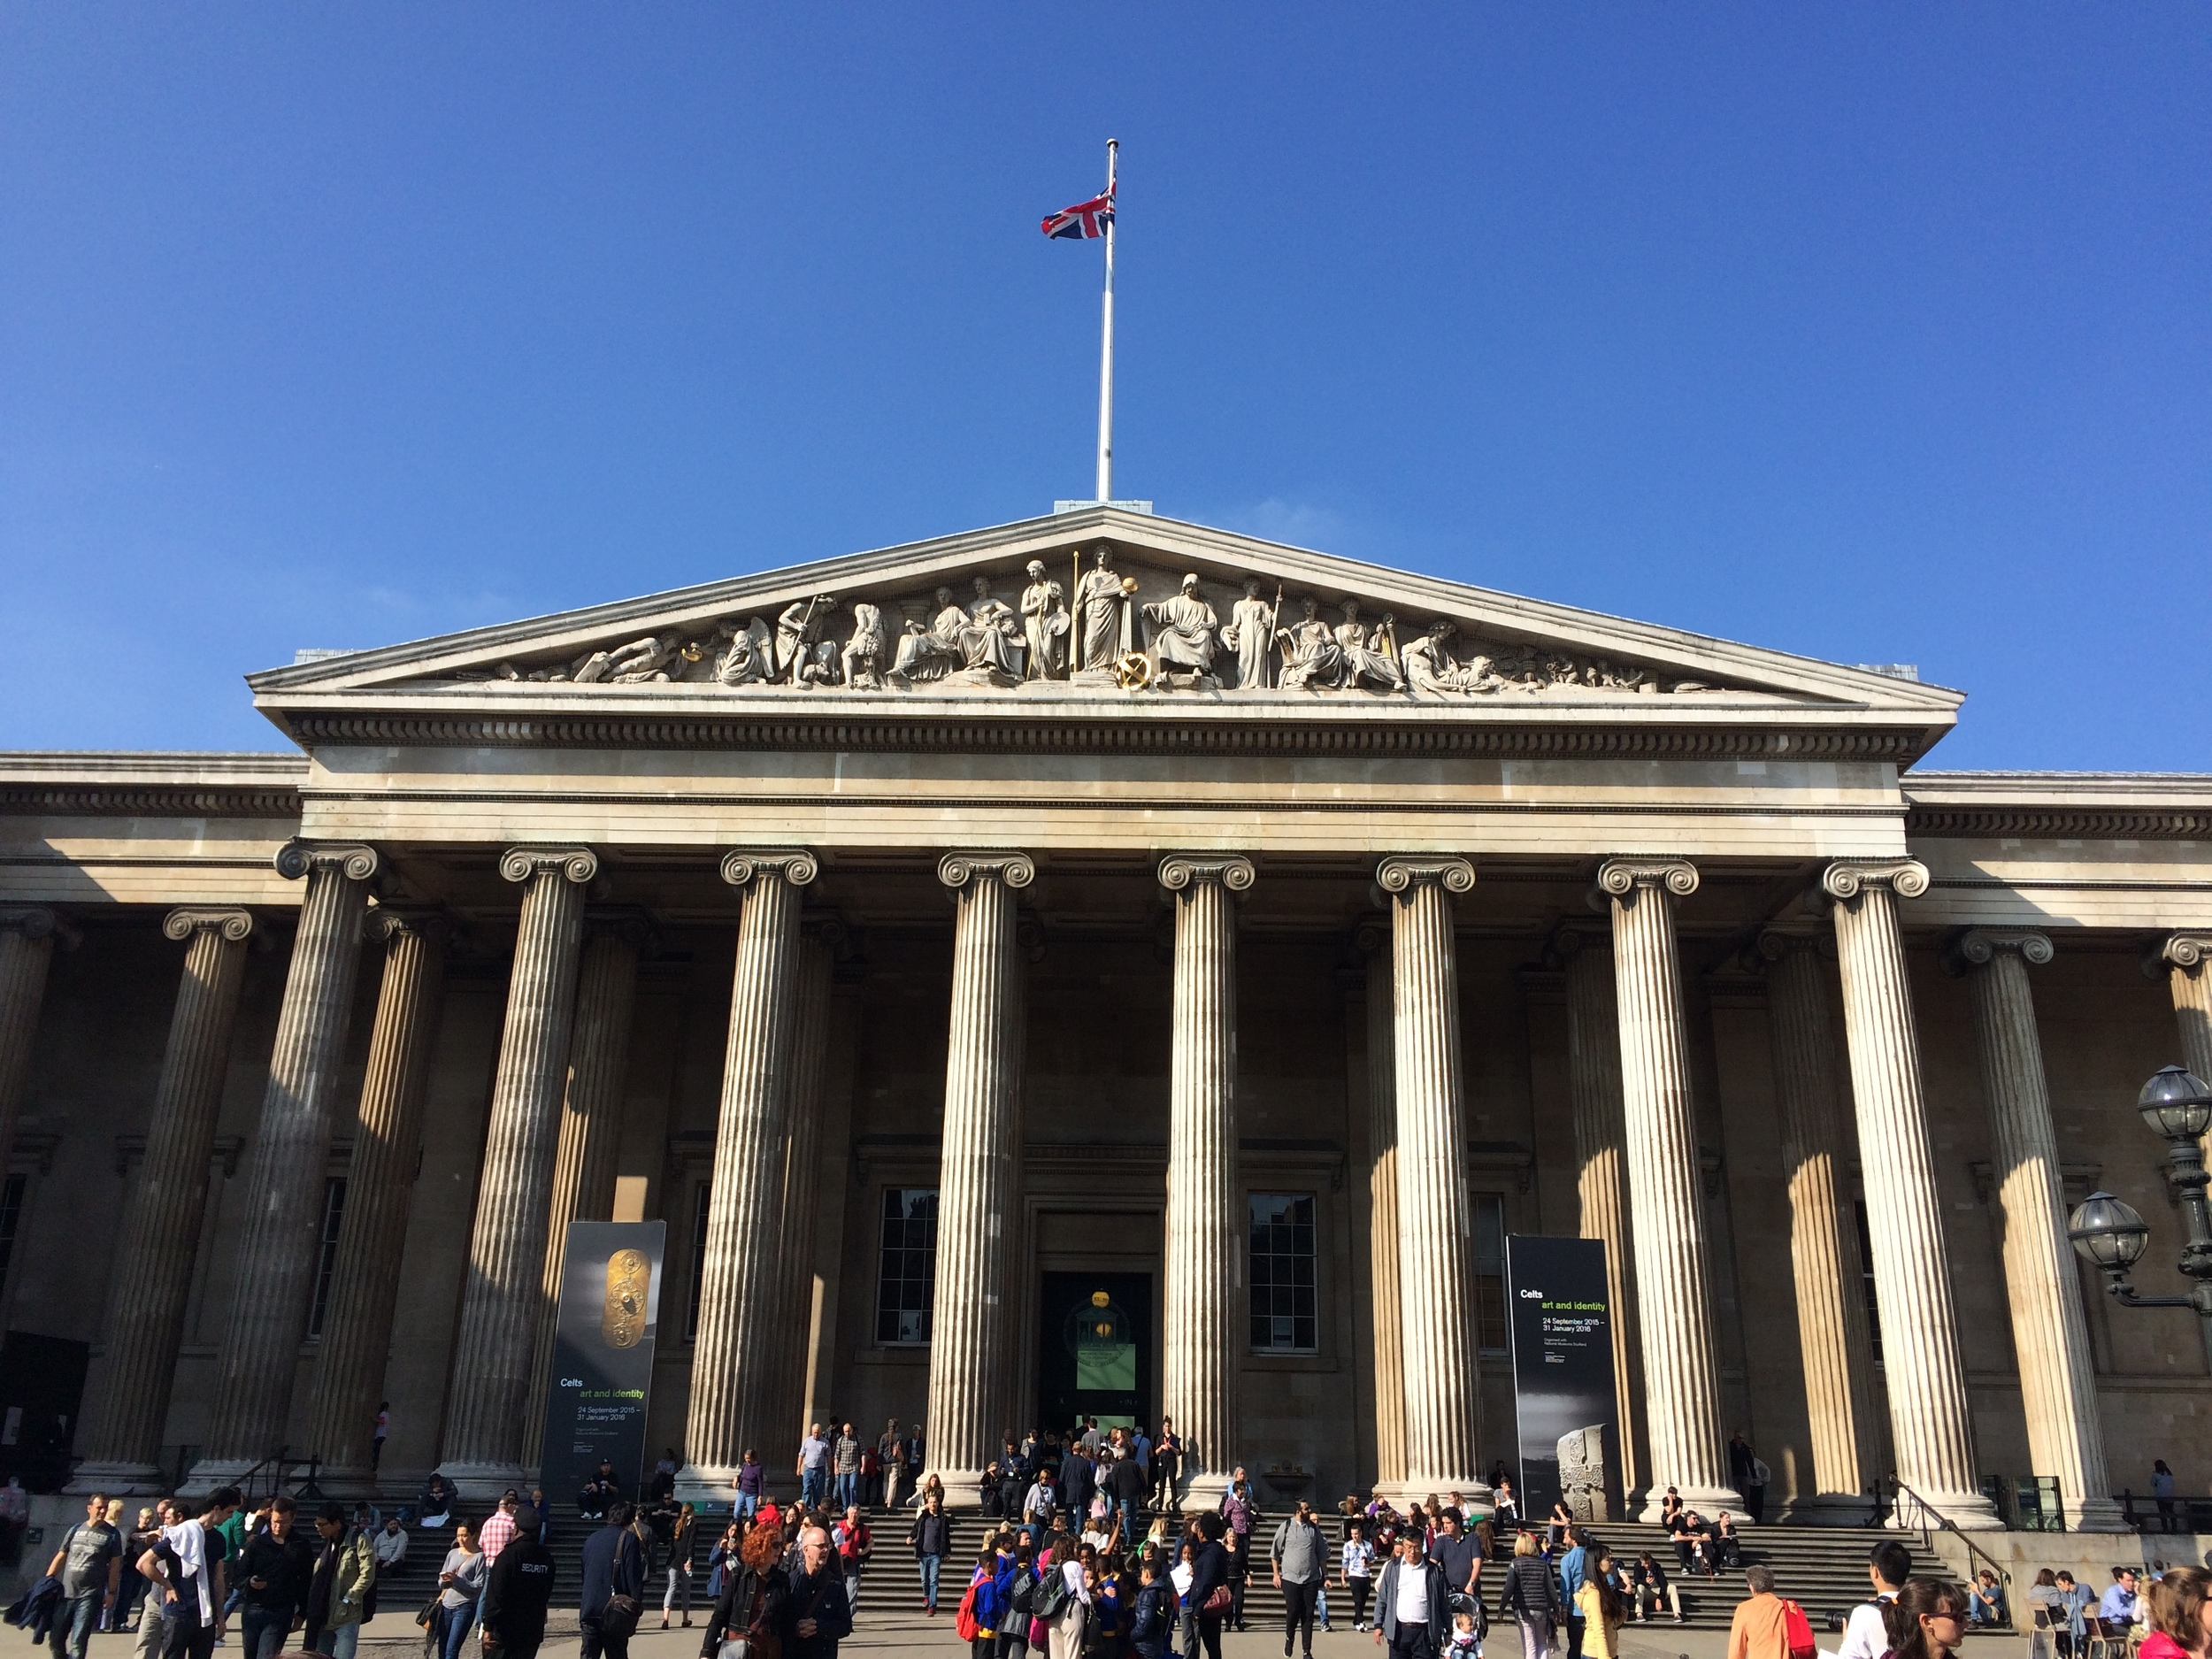 The exterior of the British Museum with the Union Jack flag proudly displayed on top.